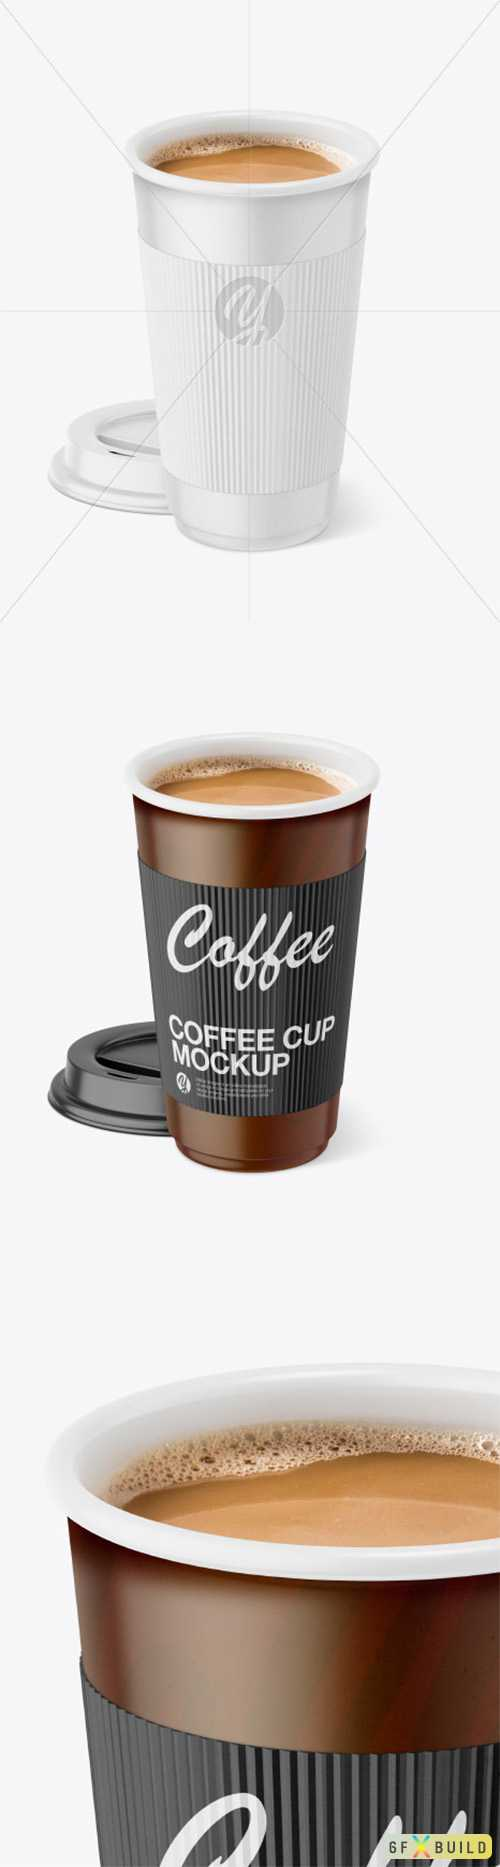 Paper Coffee Cup With Holder Mockup 78493 TIF